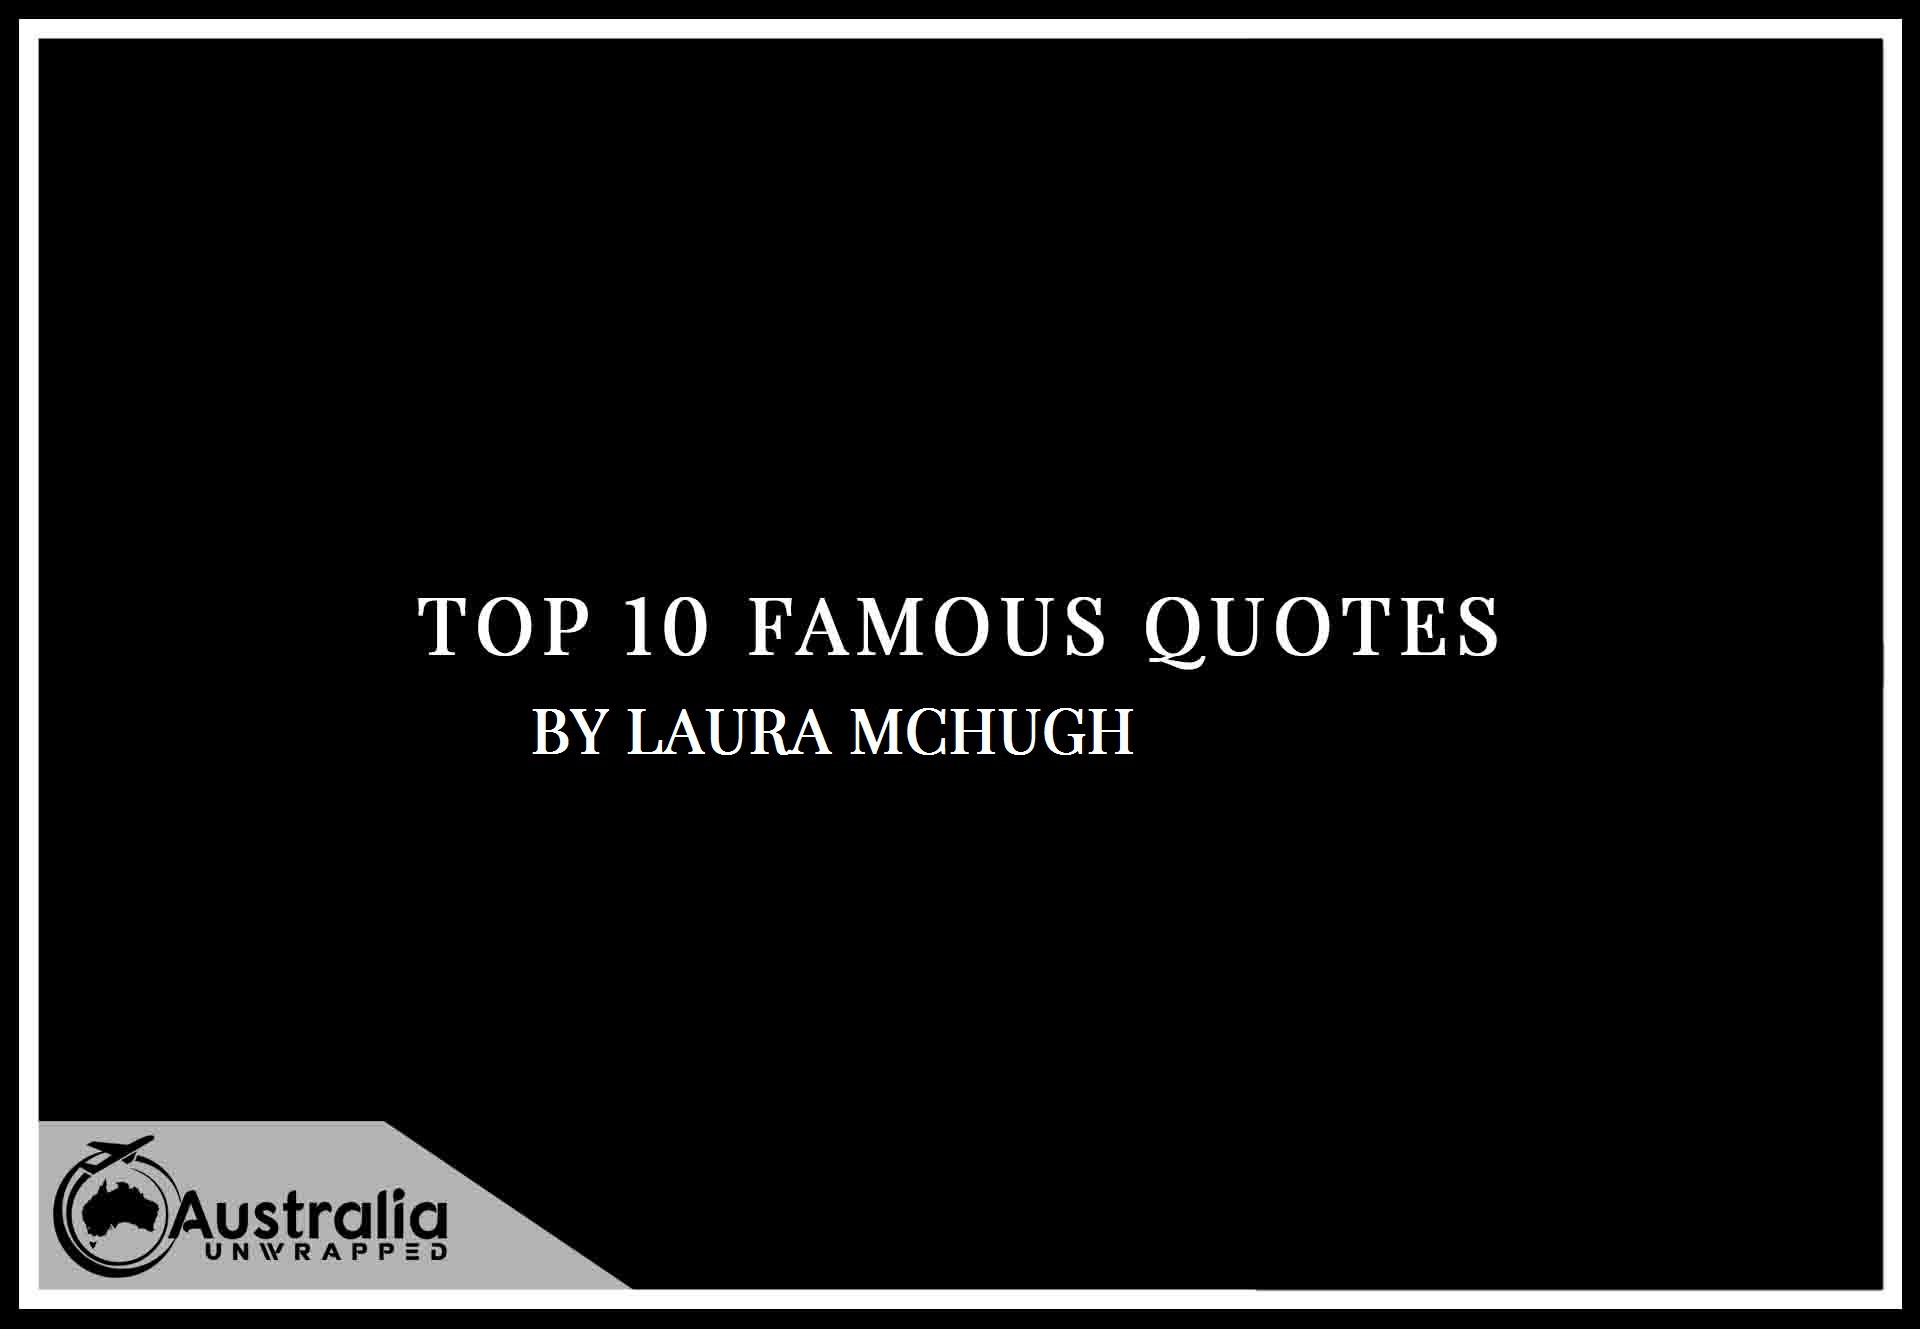 Laura McHugh's Top 10 Popular and Famous Quotes